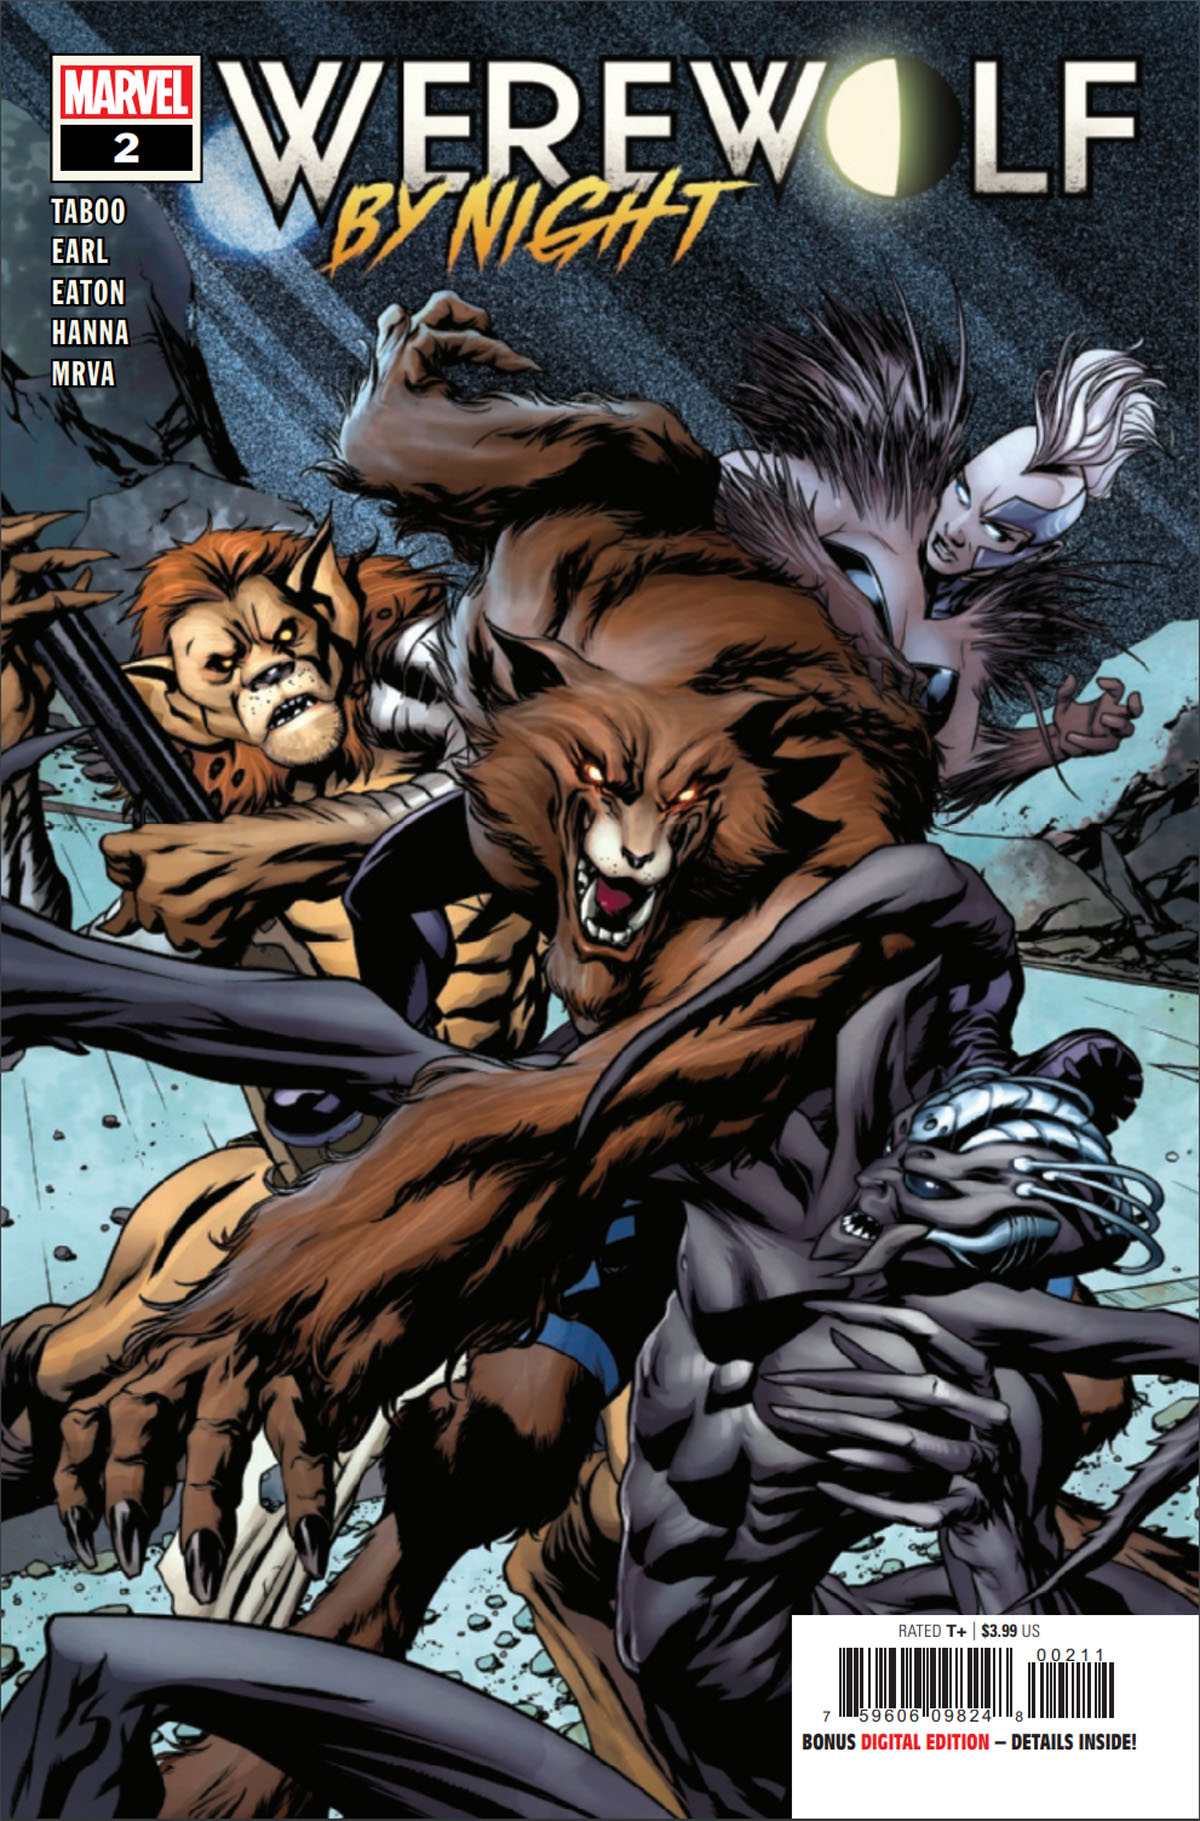 Werewolf by Night #2 cover